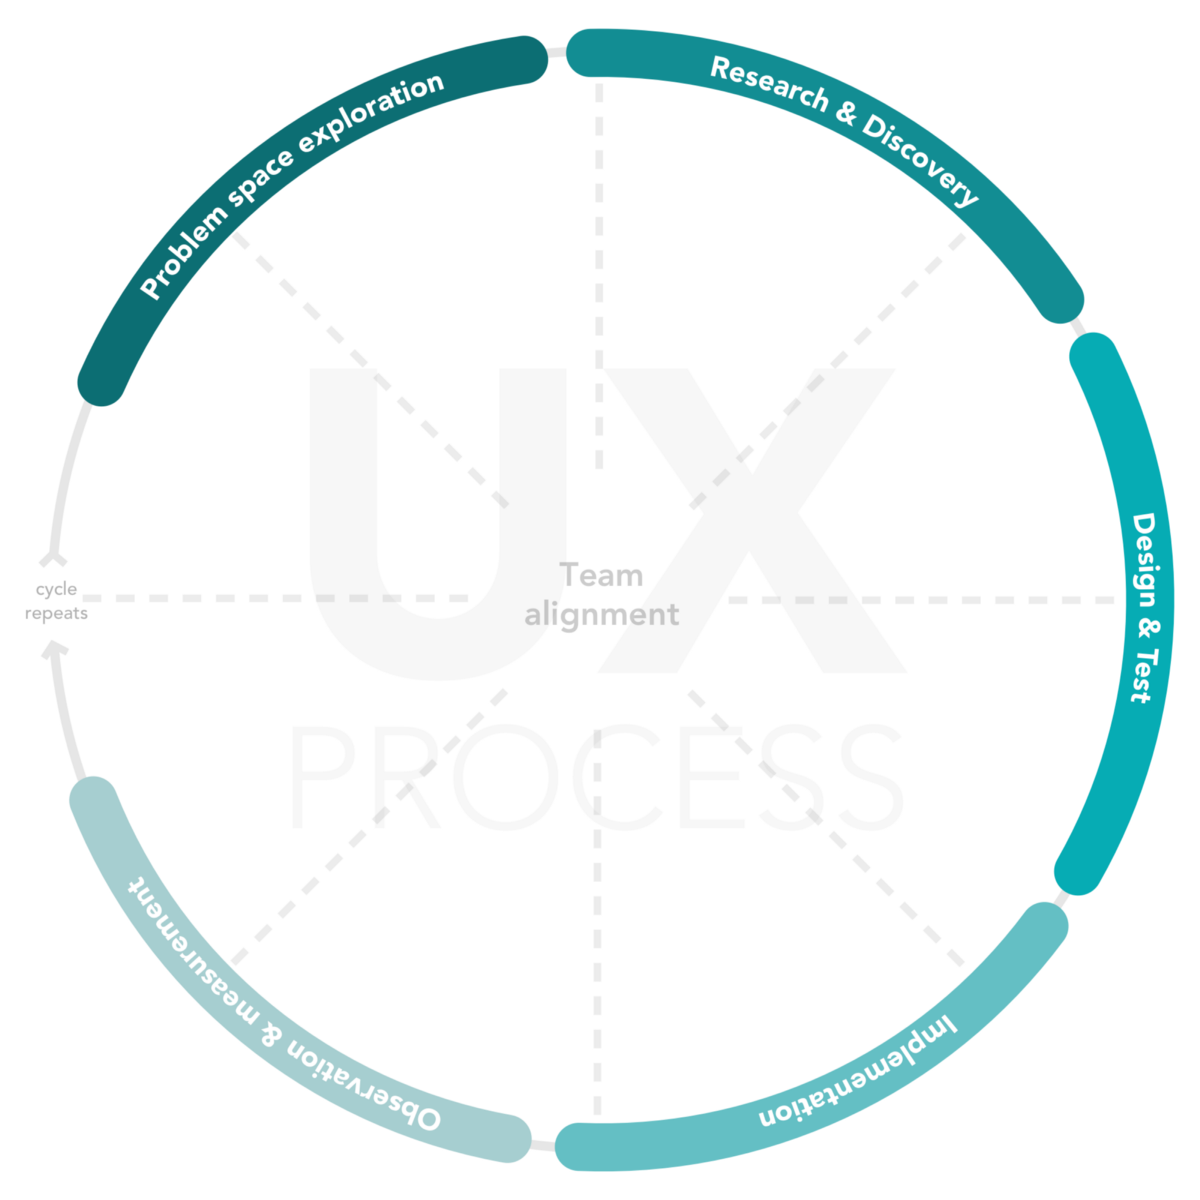 The magics of the UX cycle